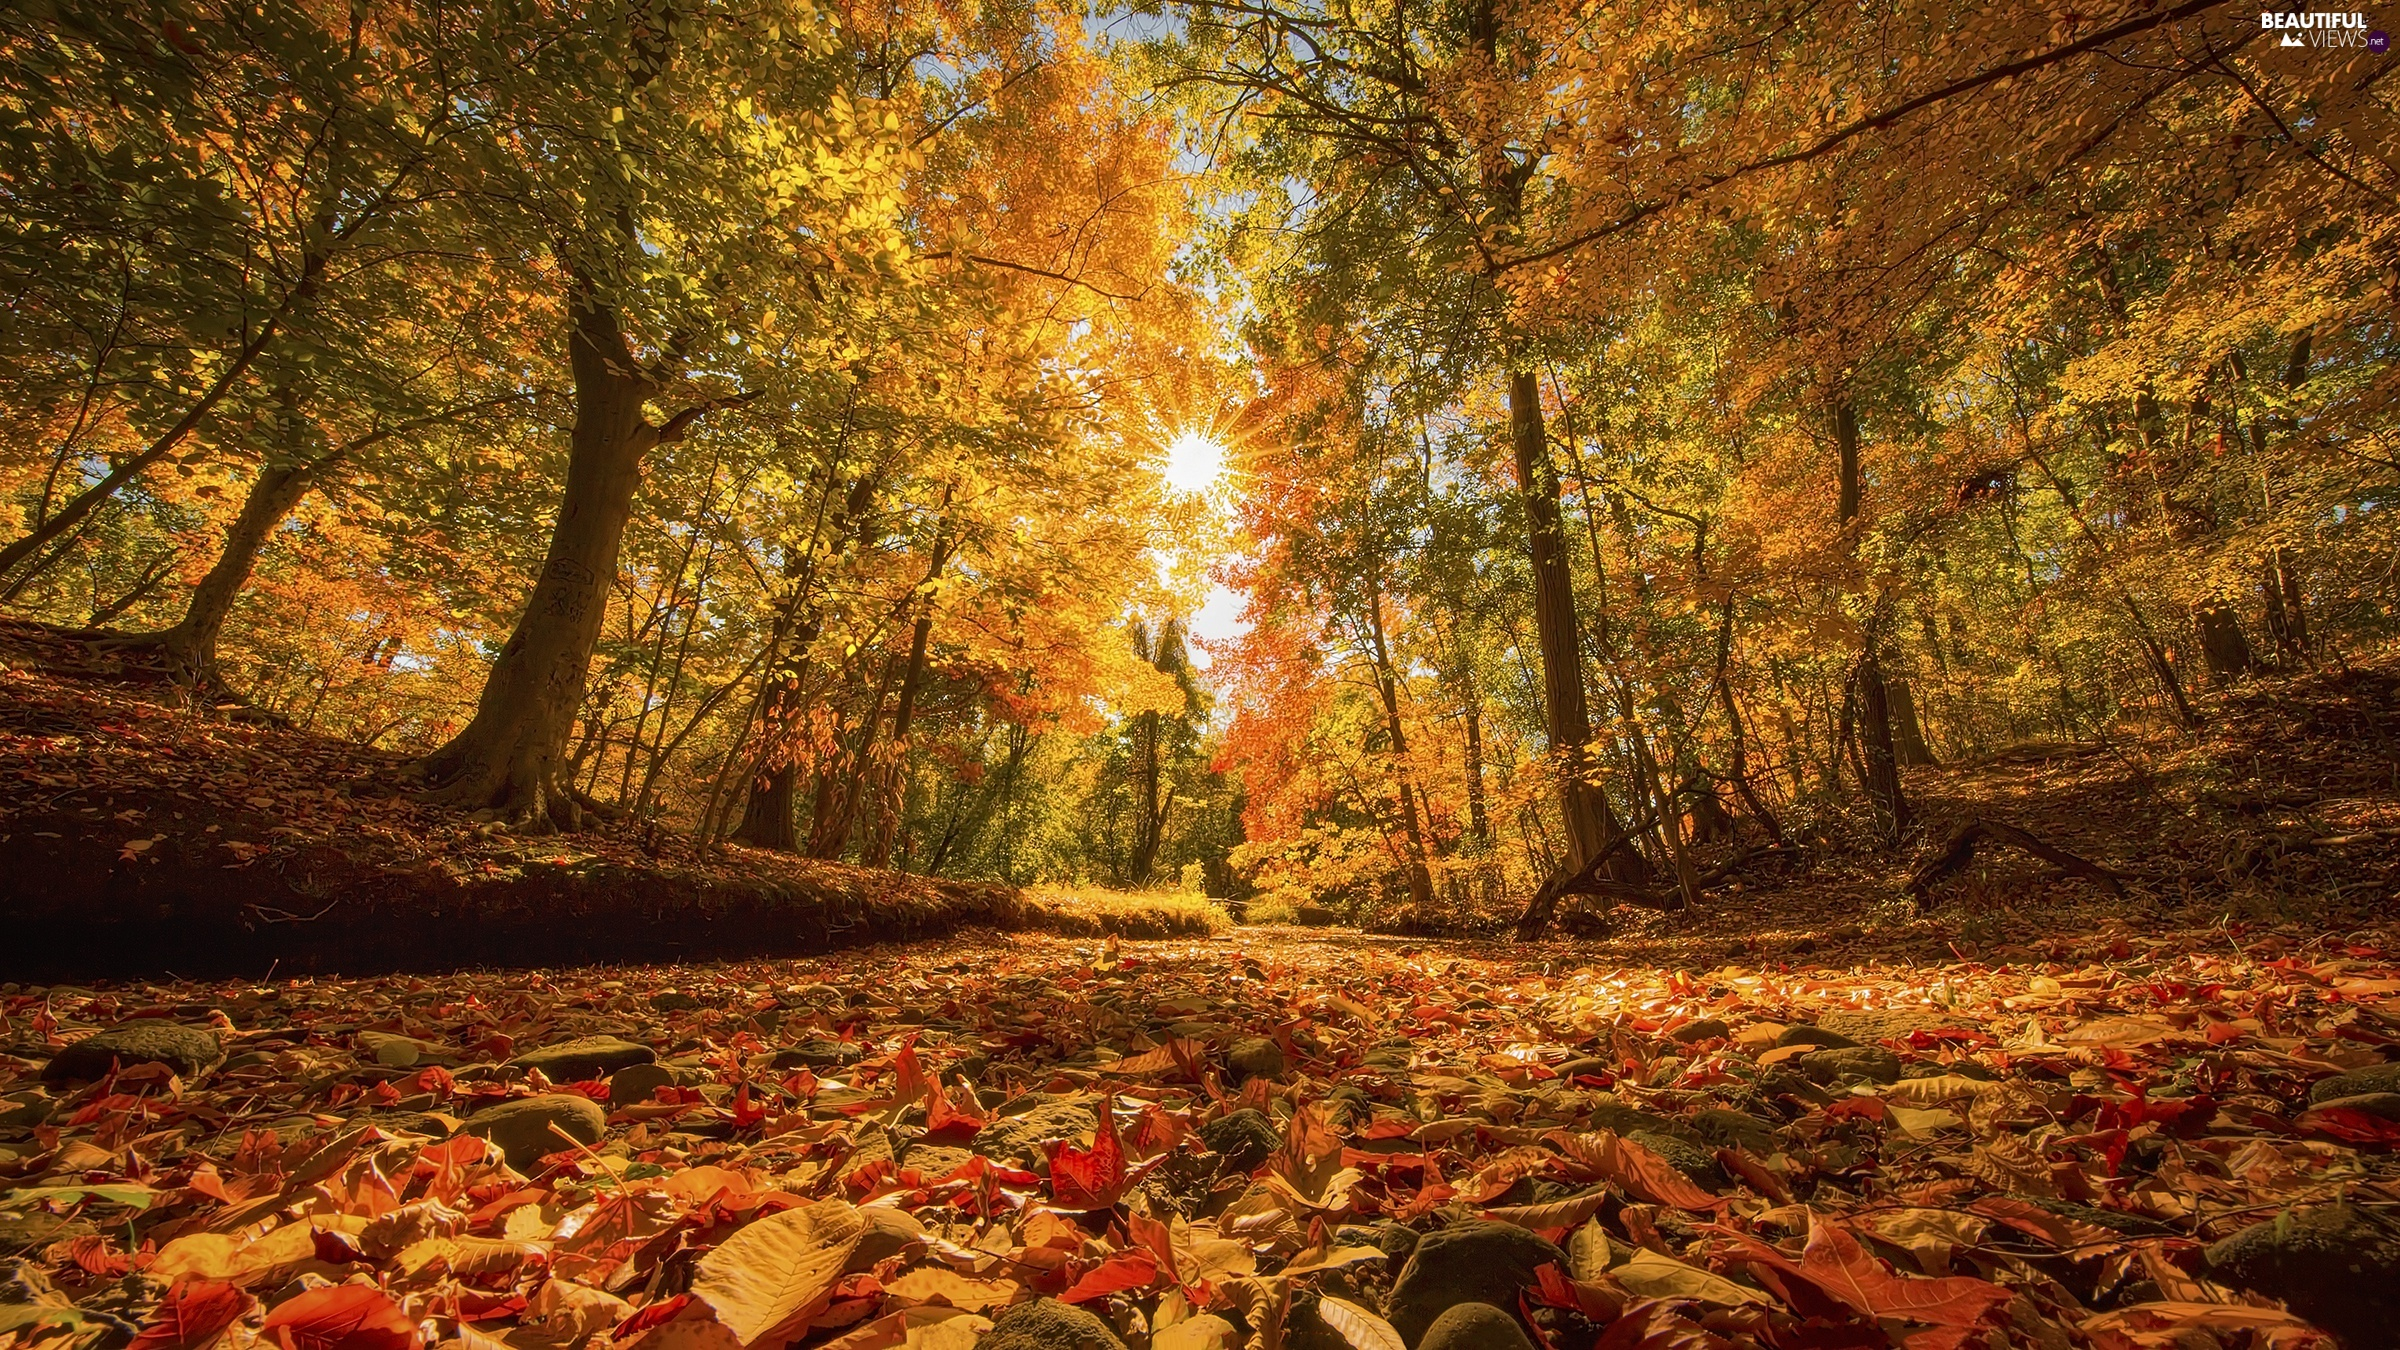 trees, autumn, Leaf, rays of the Sun, viewes, forest